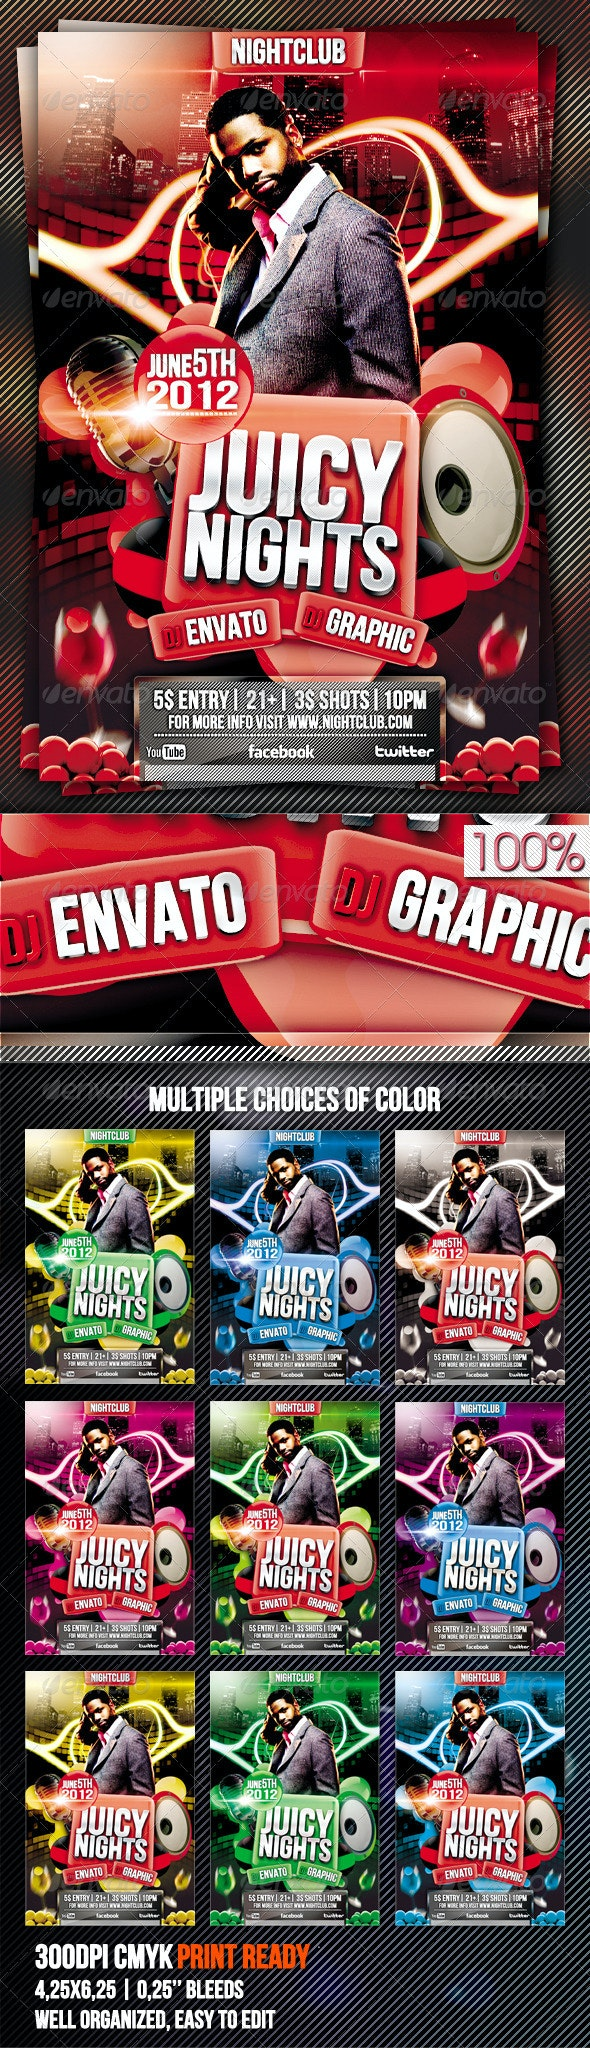 Juicy Nights Flyer Template Vol.3 - Clubs & Parties Events